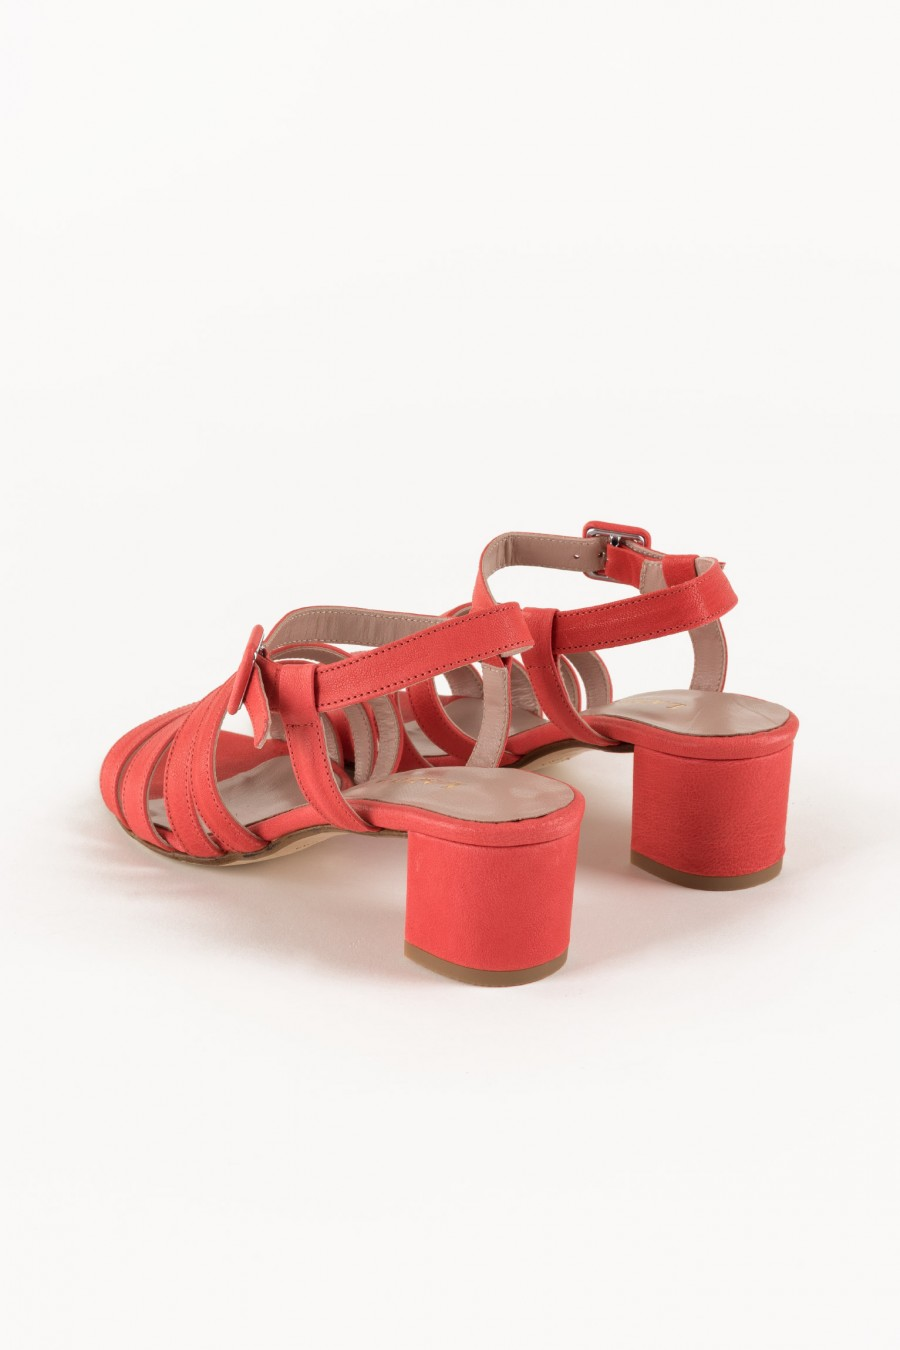 Coral red sandals with stripes